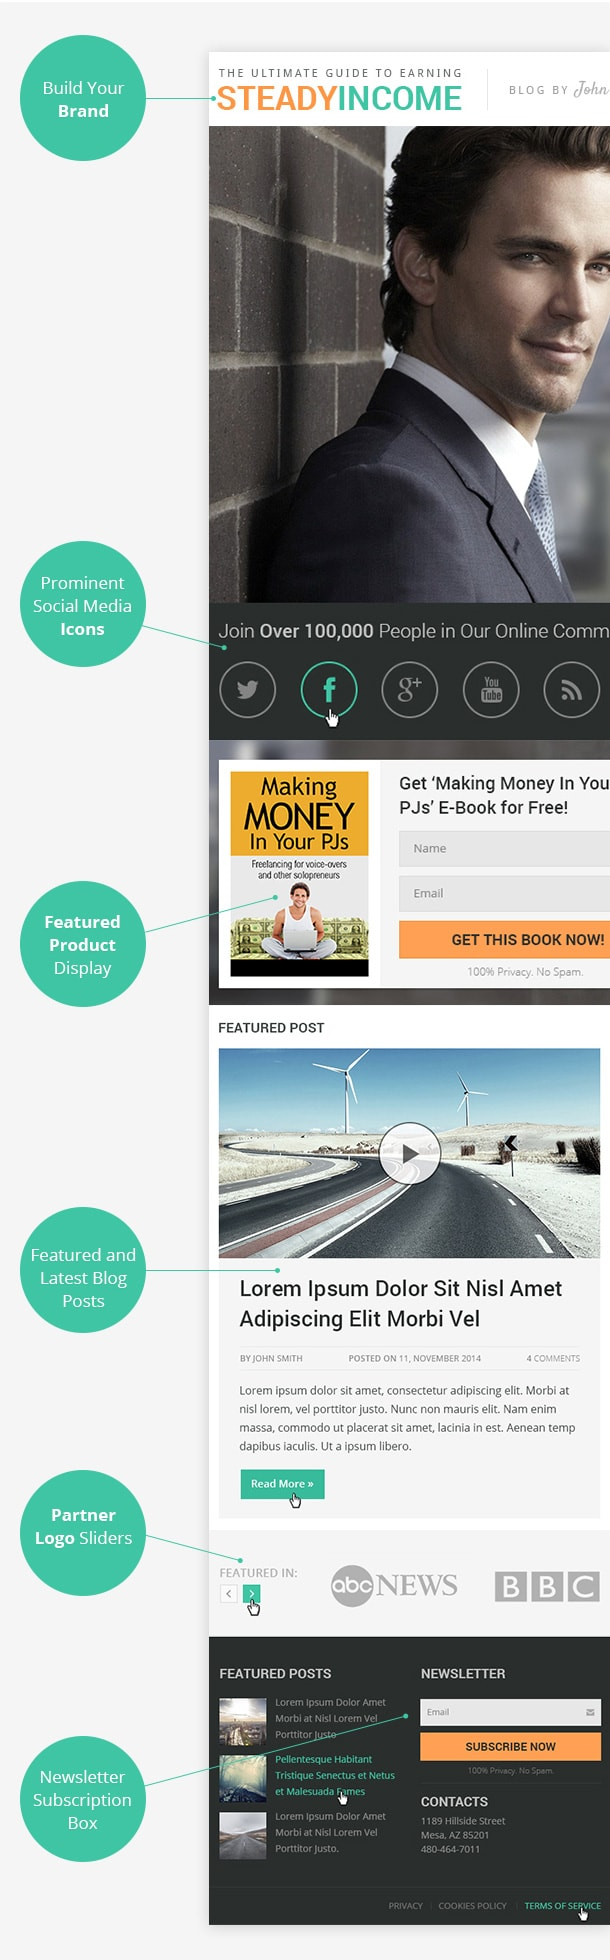 SteadyIncome Screenshot Homepage